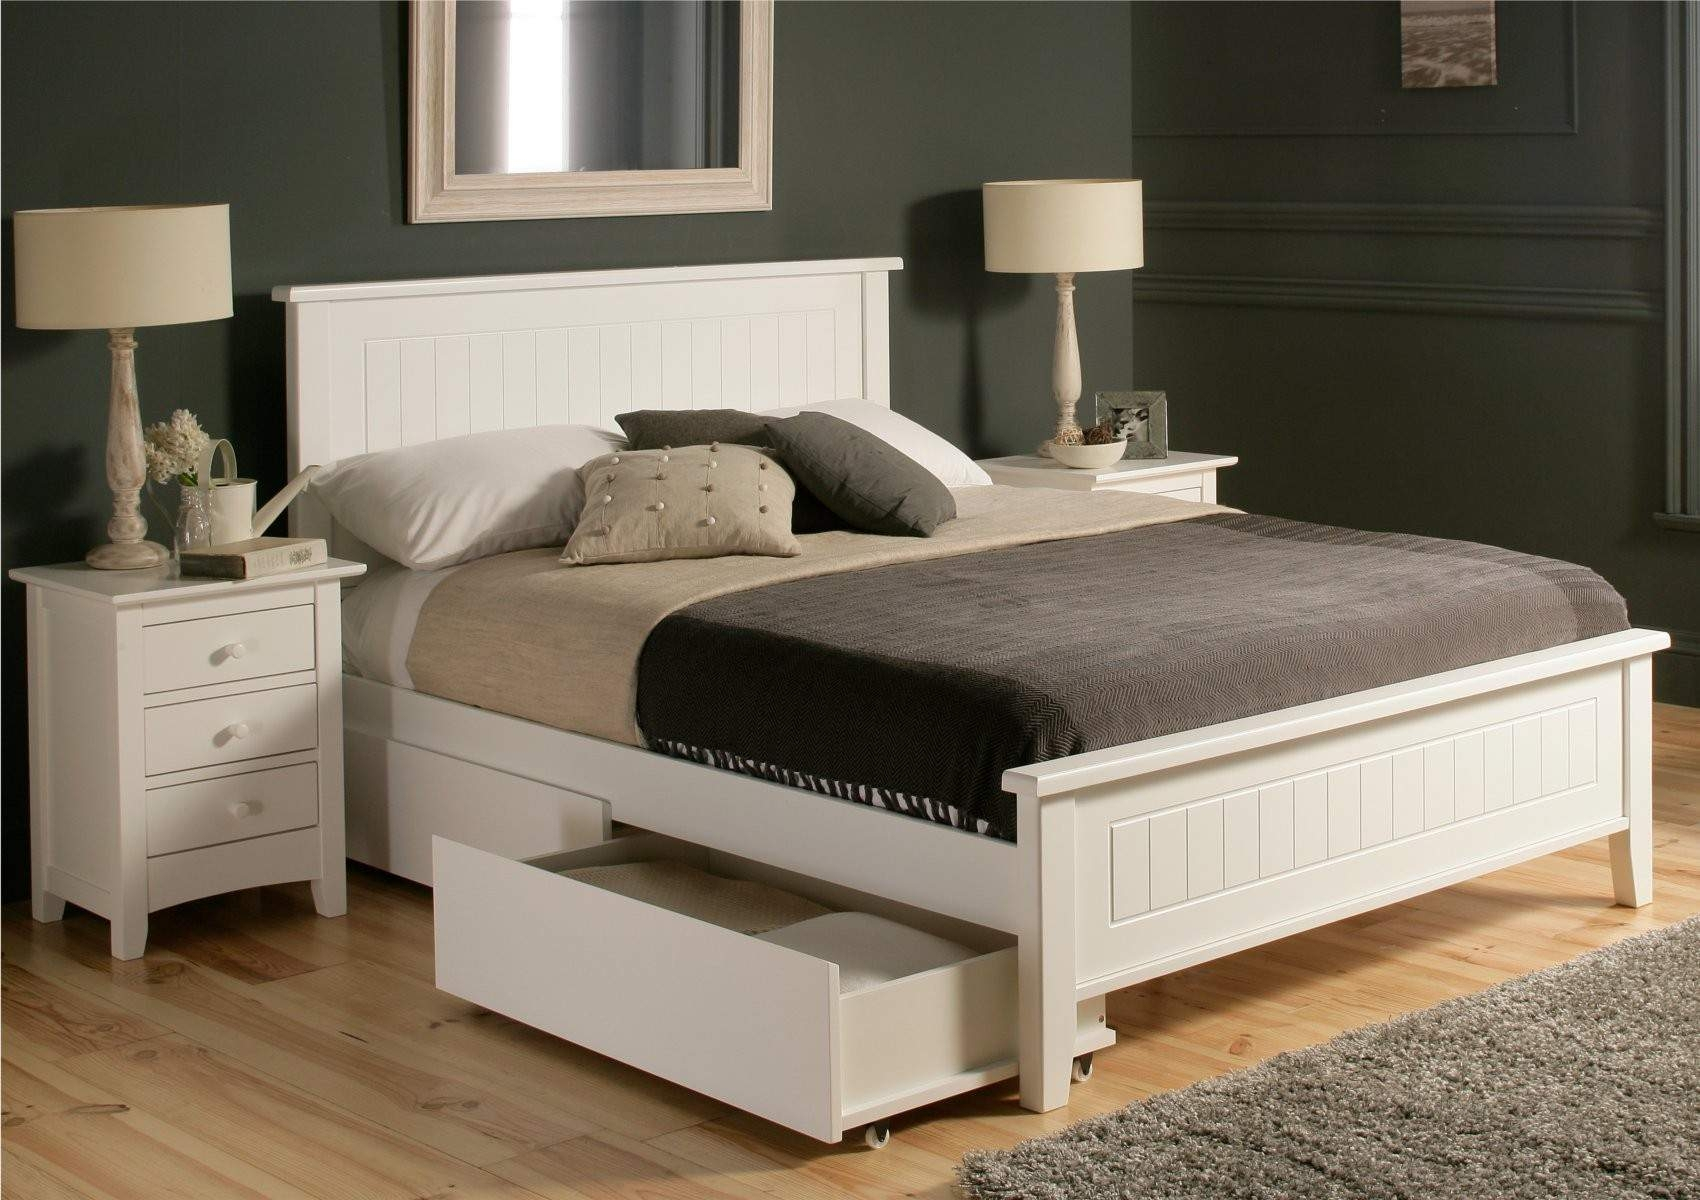 queen size bed frame with drawers underneath approved queen bed frames with storage size frame drawers underneath TYDFBHN